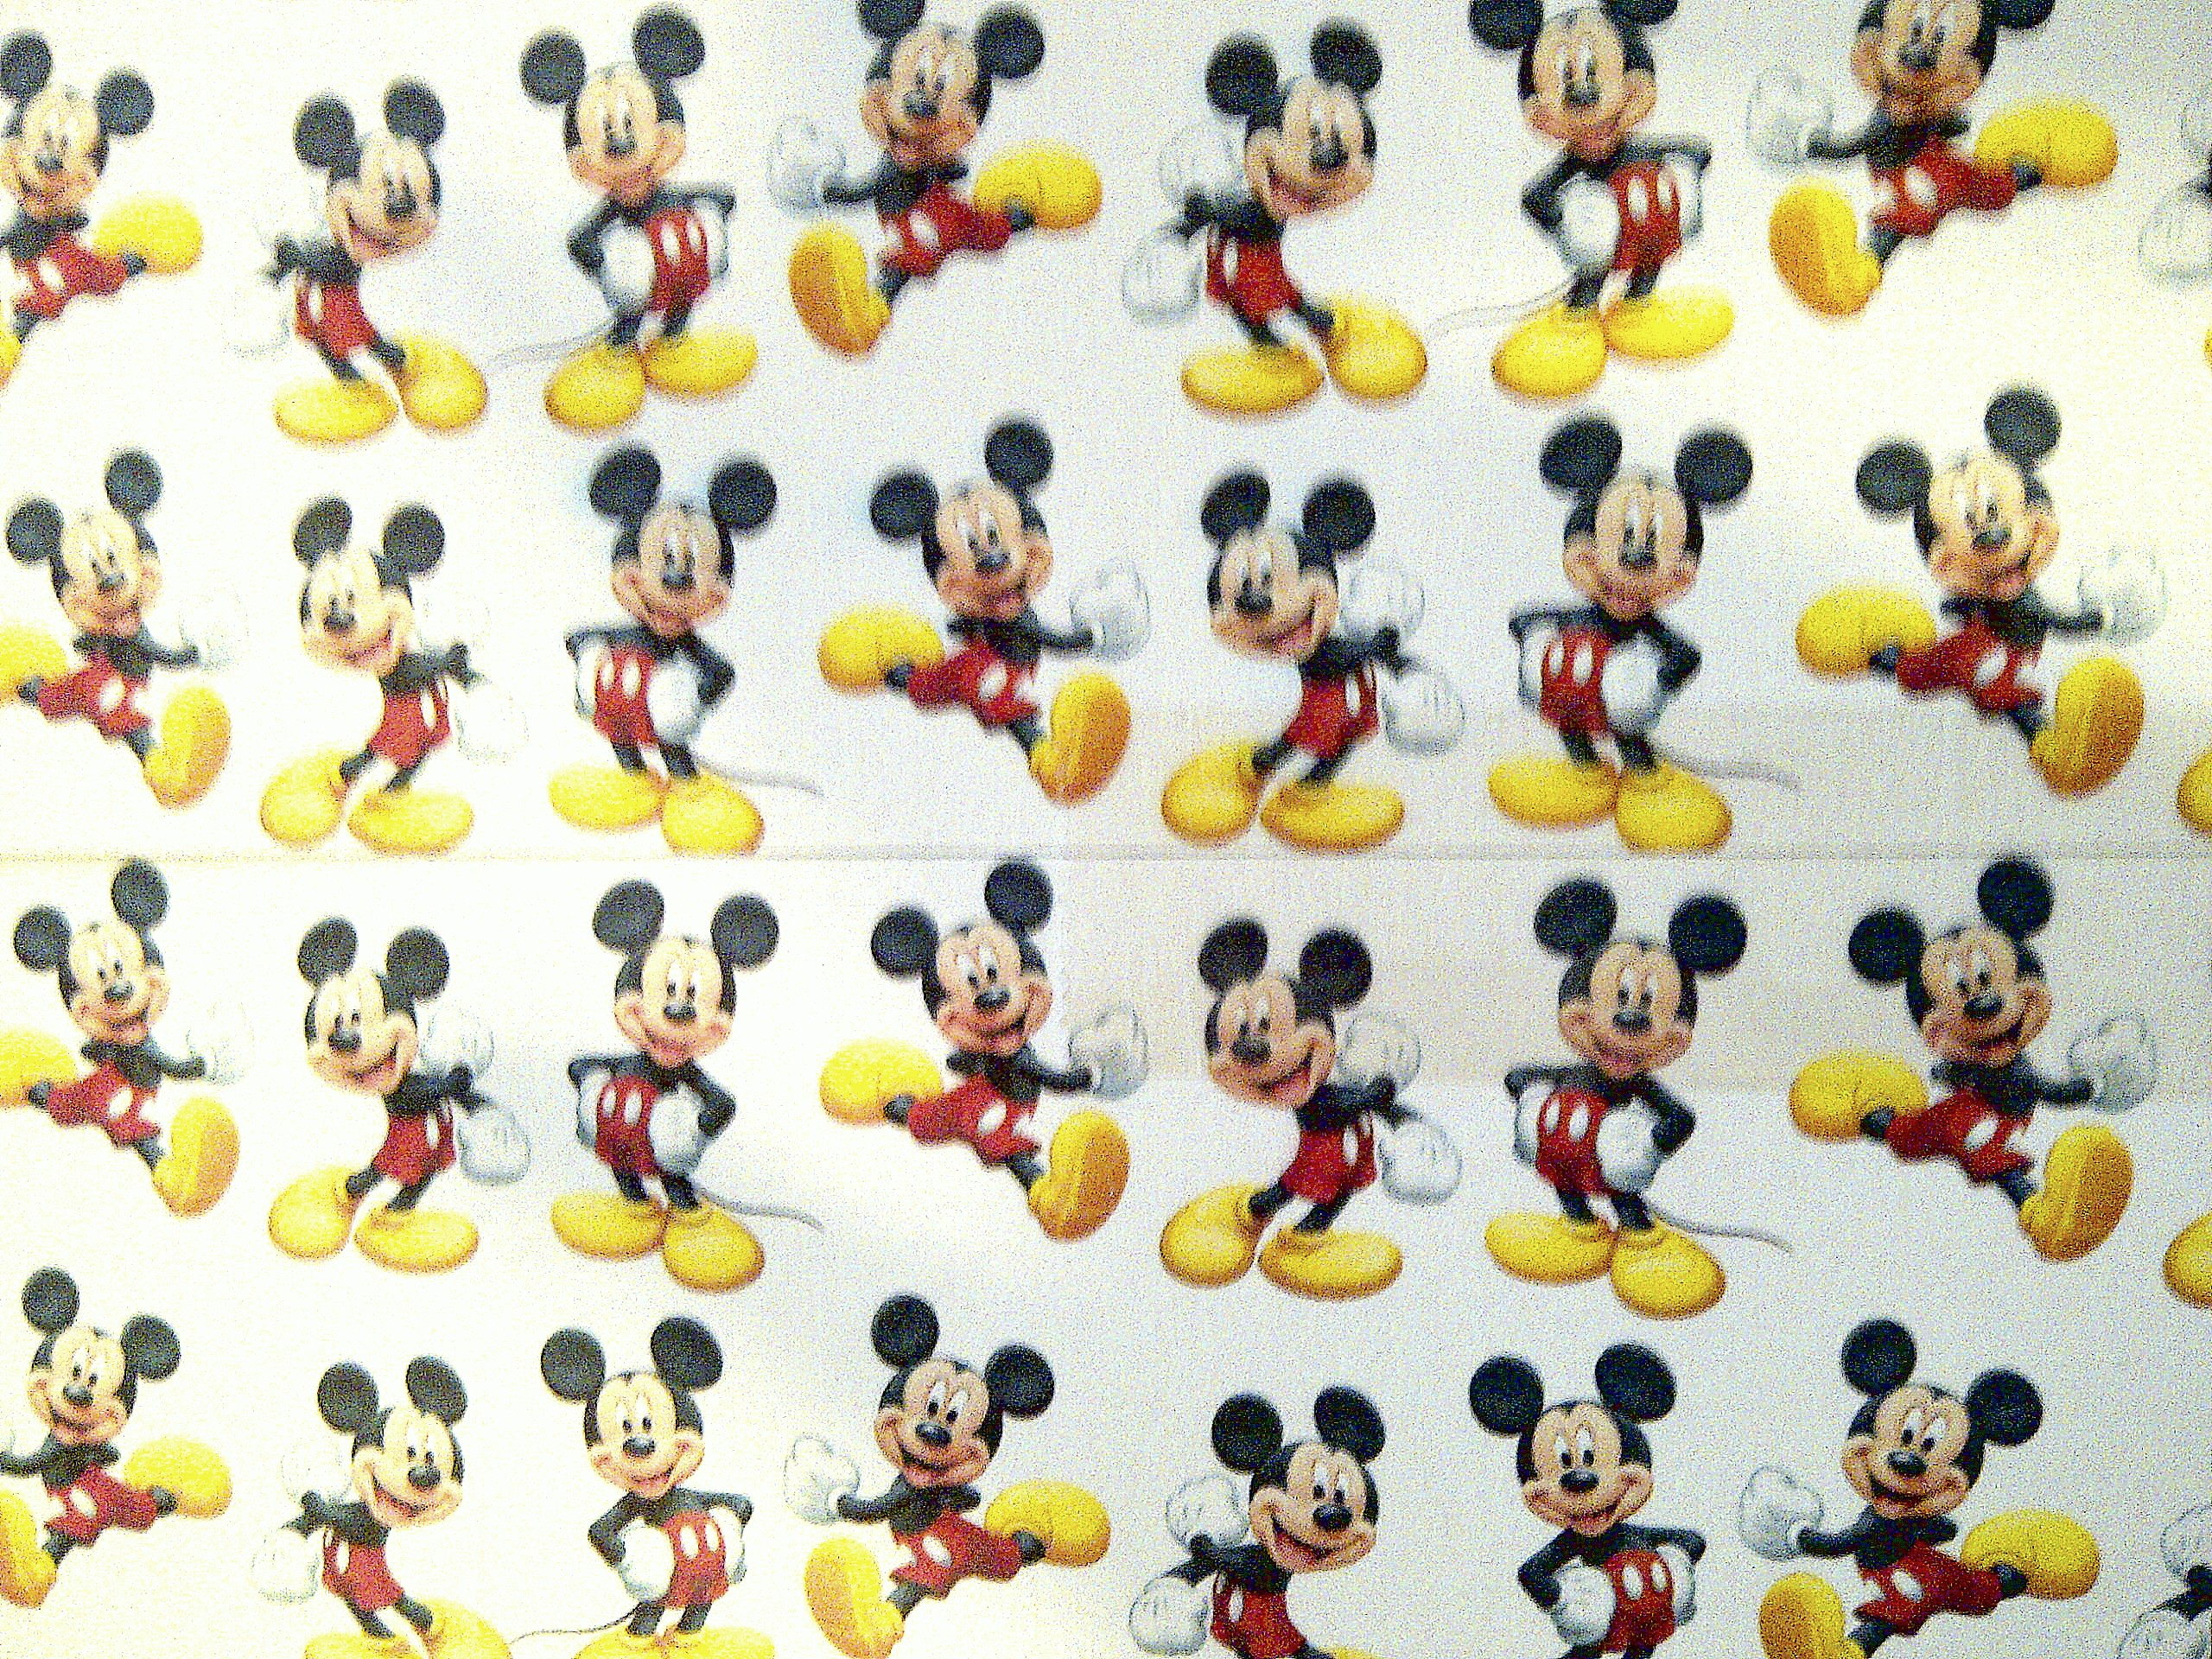 Scrapbook paper disney - In The Deal Of The Century I Found Another 59 Cent Scrapbook Paper 12 X 12 That Had 49 Square Pictures Of The Mickey S Clubhouse Characters